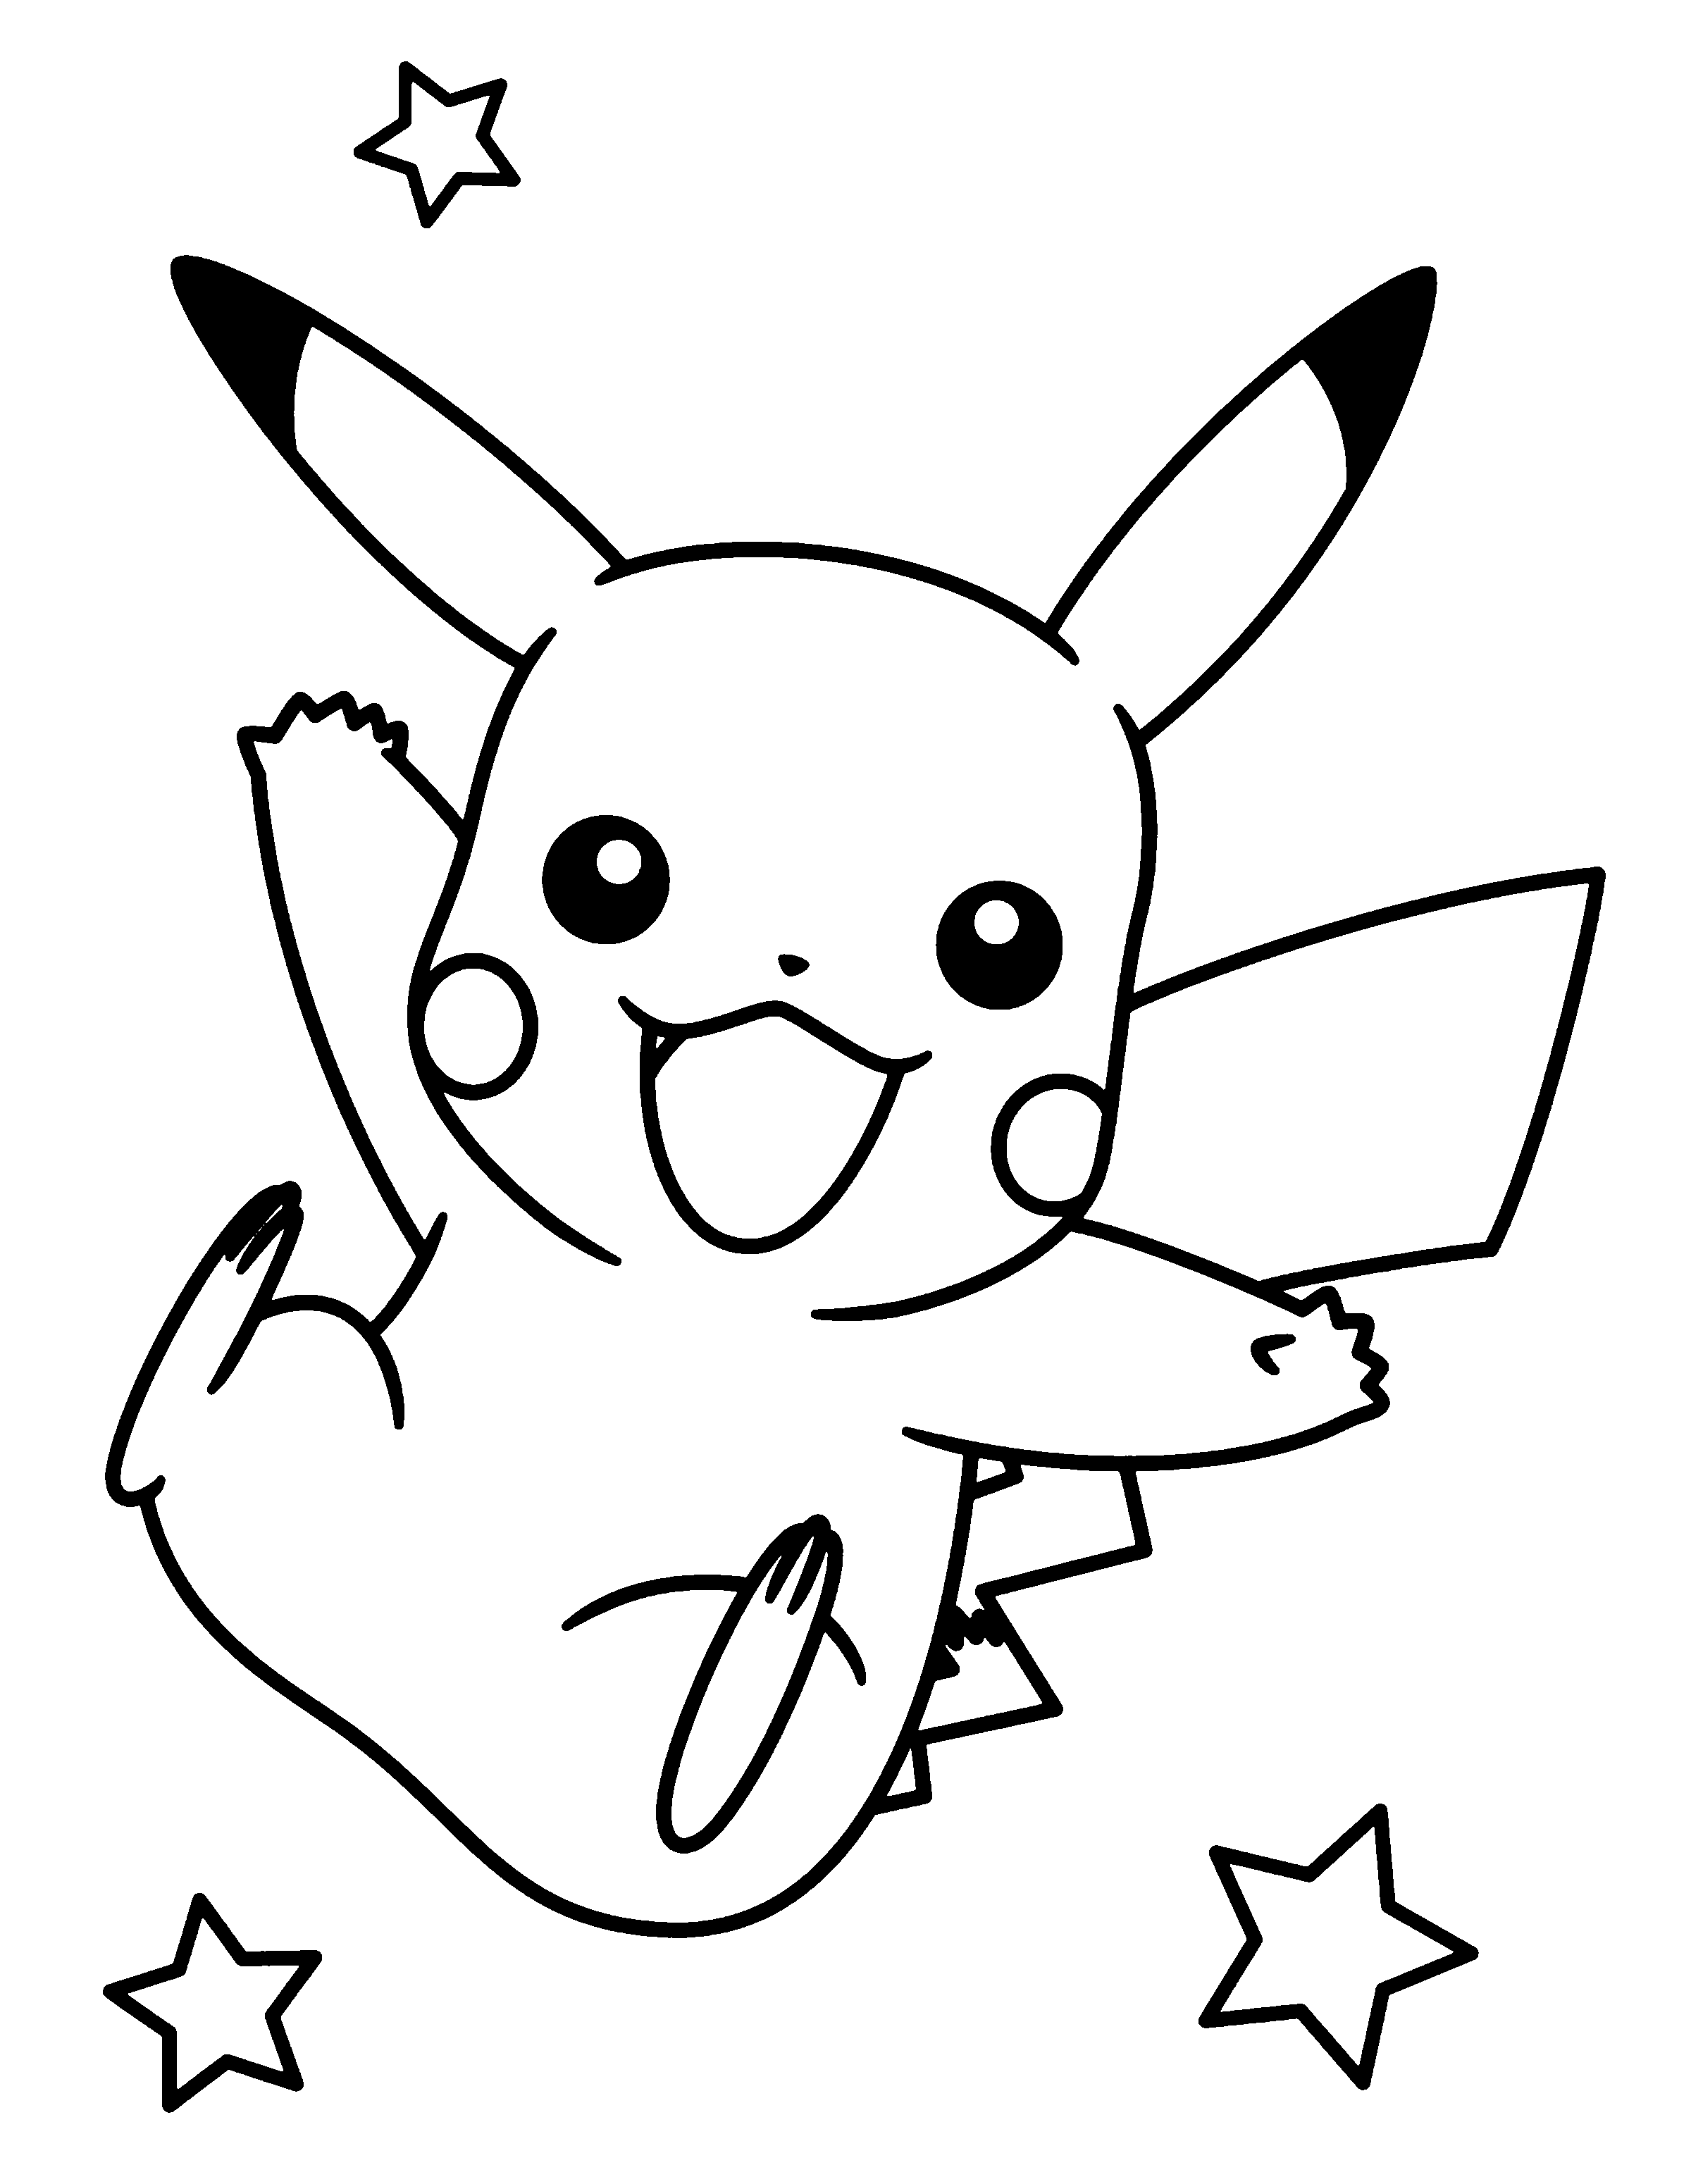 Dibujos pikachu para dibujar imprimir colorear y for Pikachu coloring pages printable